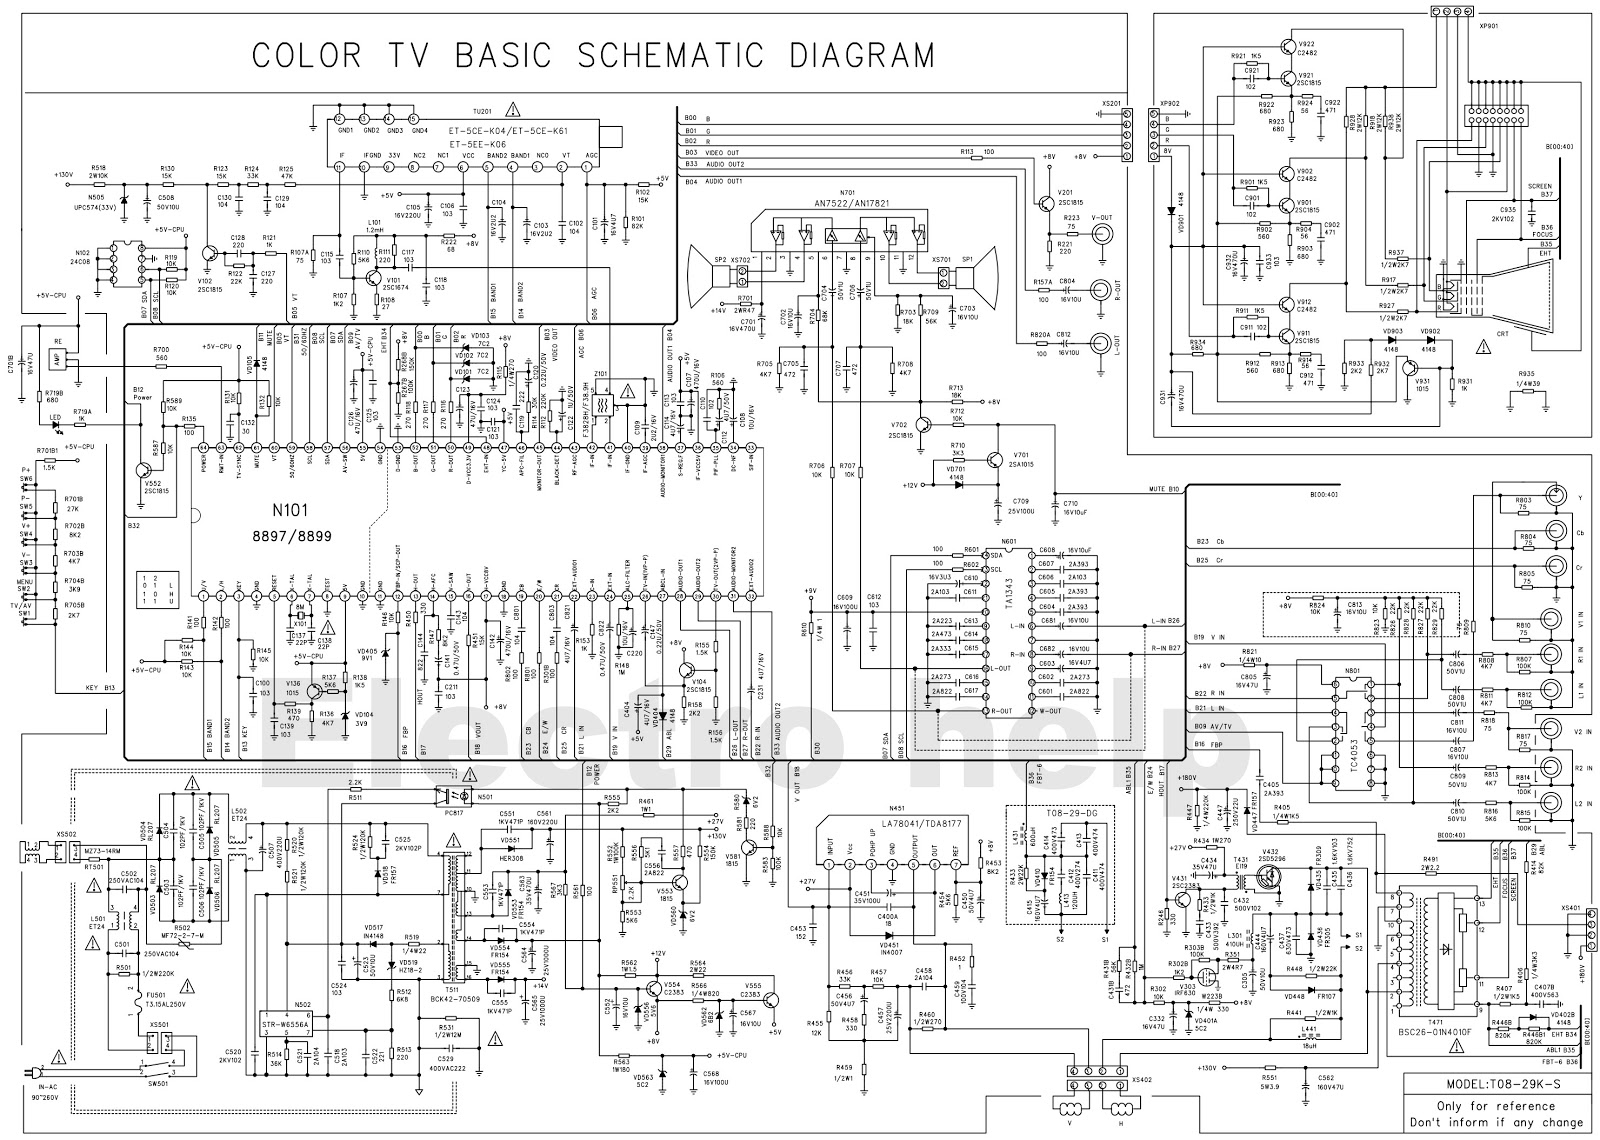 colour tv circuit diagram using tda8899 system control chroma rh schematicscom blogspot com ic schematic diagram to breadboard software ic engine schematic diagram